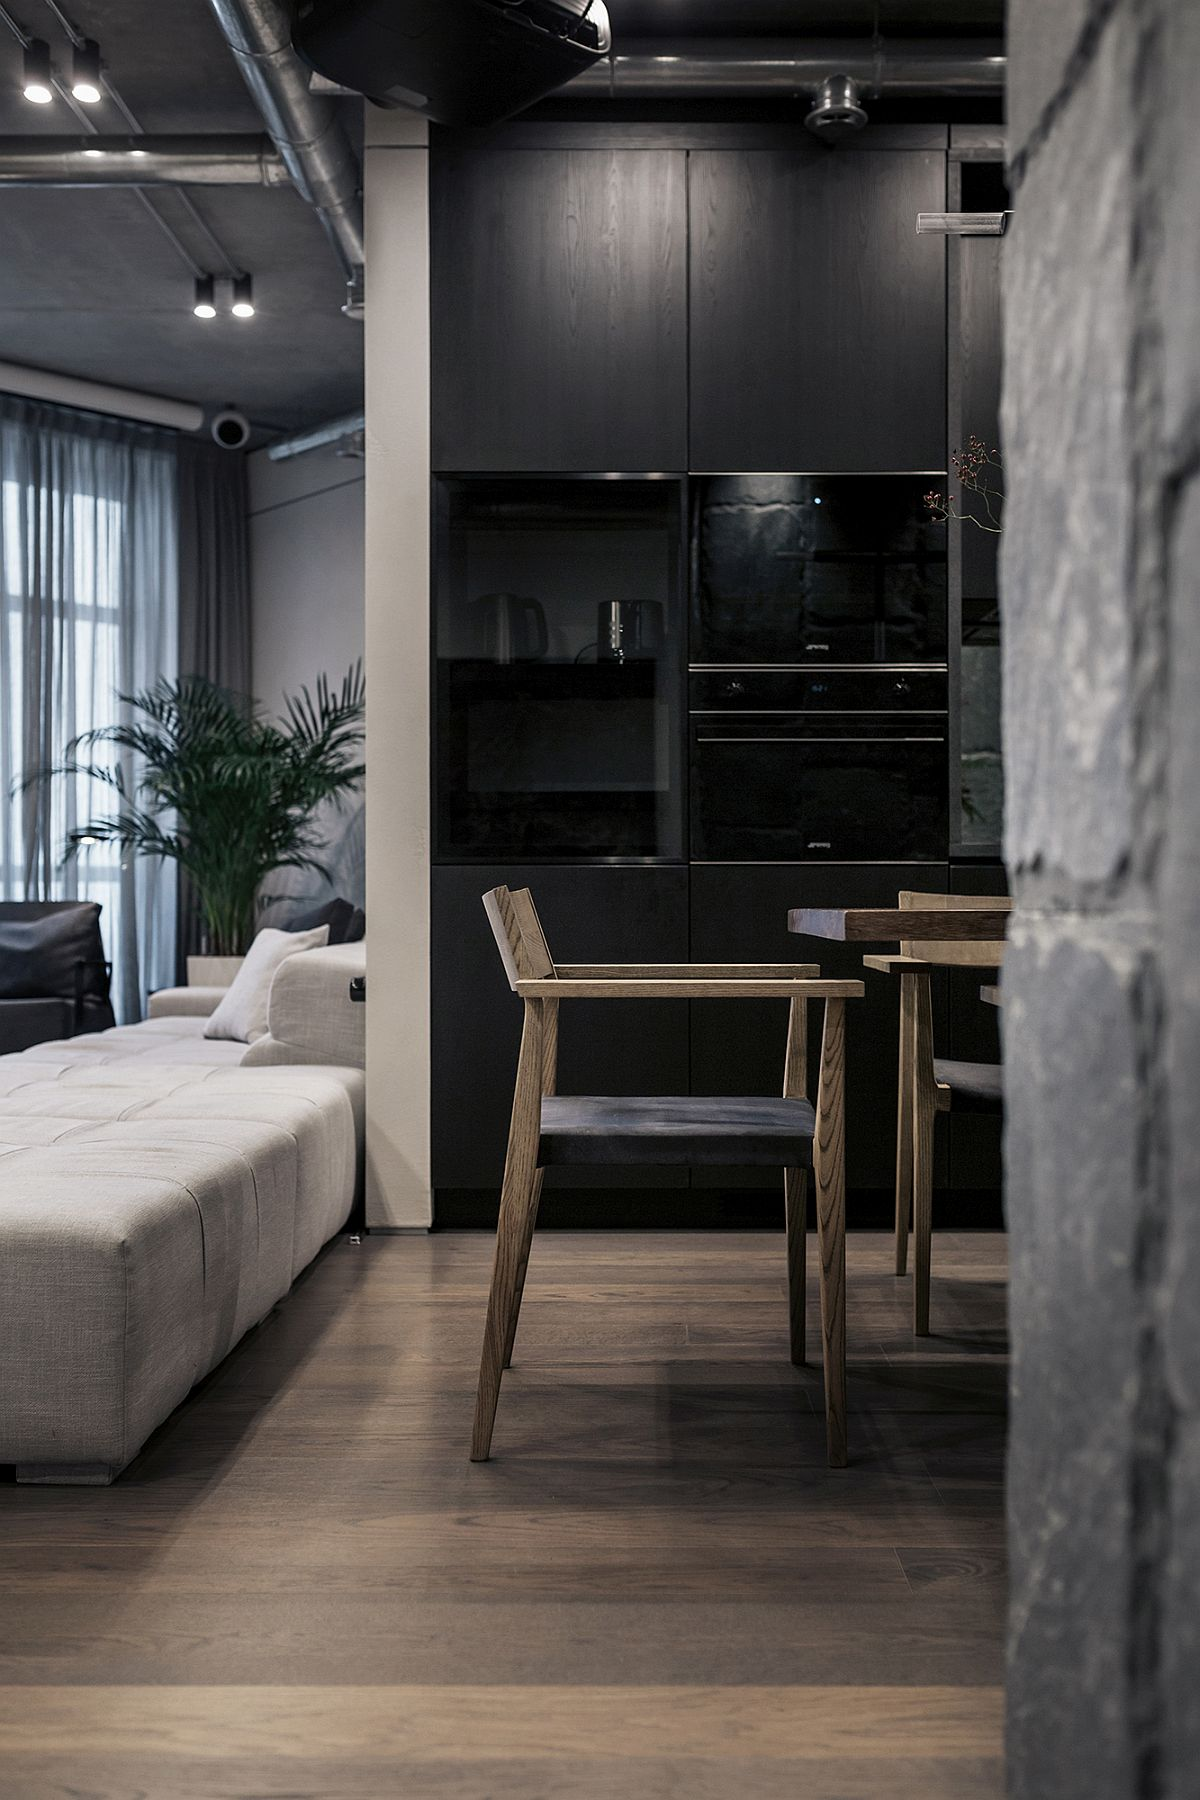 Exposed-natural-stone-is-combined-with-concrete-and-wooden-finishes-inside-the-apartment-99556